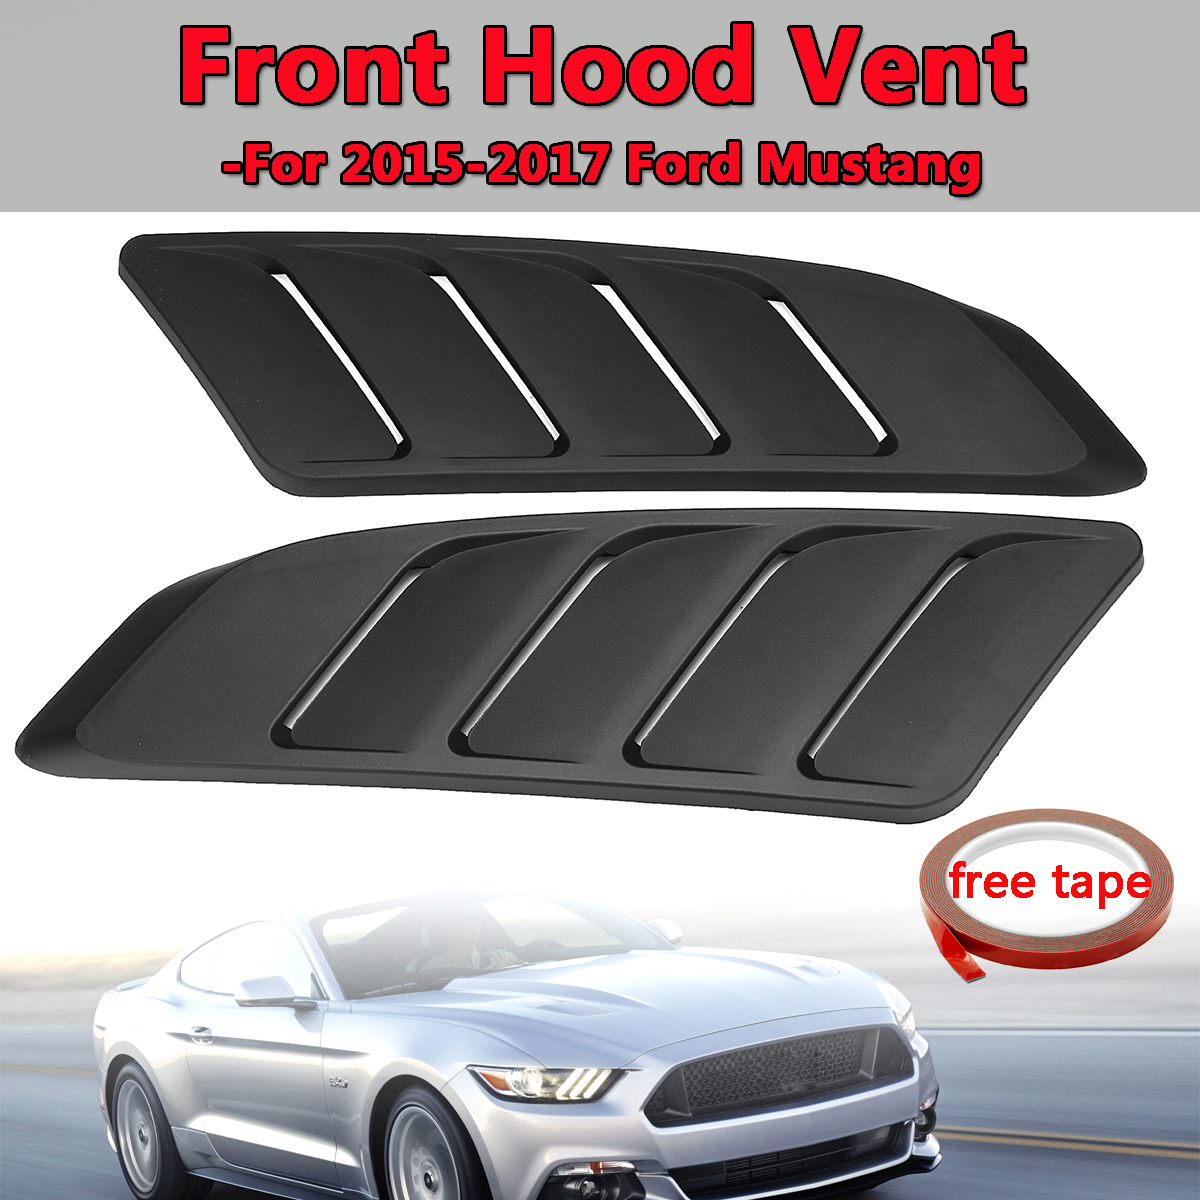 Front Hood Vent Fit For 2015-2017 For Ford For Mustang Panel Trim Black 2Pcs Universal Car Air Intake Scoop Bonnet Hood Vent ob 515 universal air flow vent hood covers for car silver pair